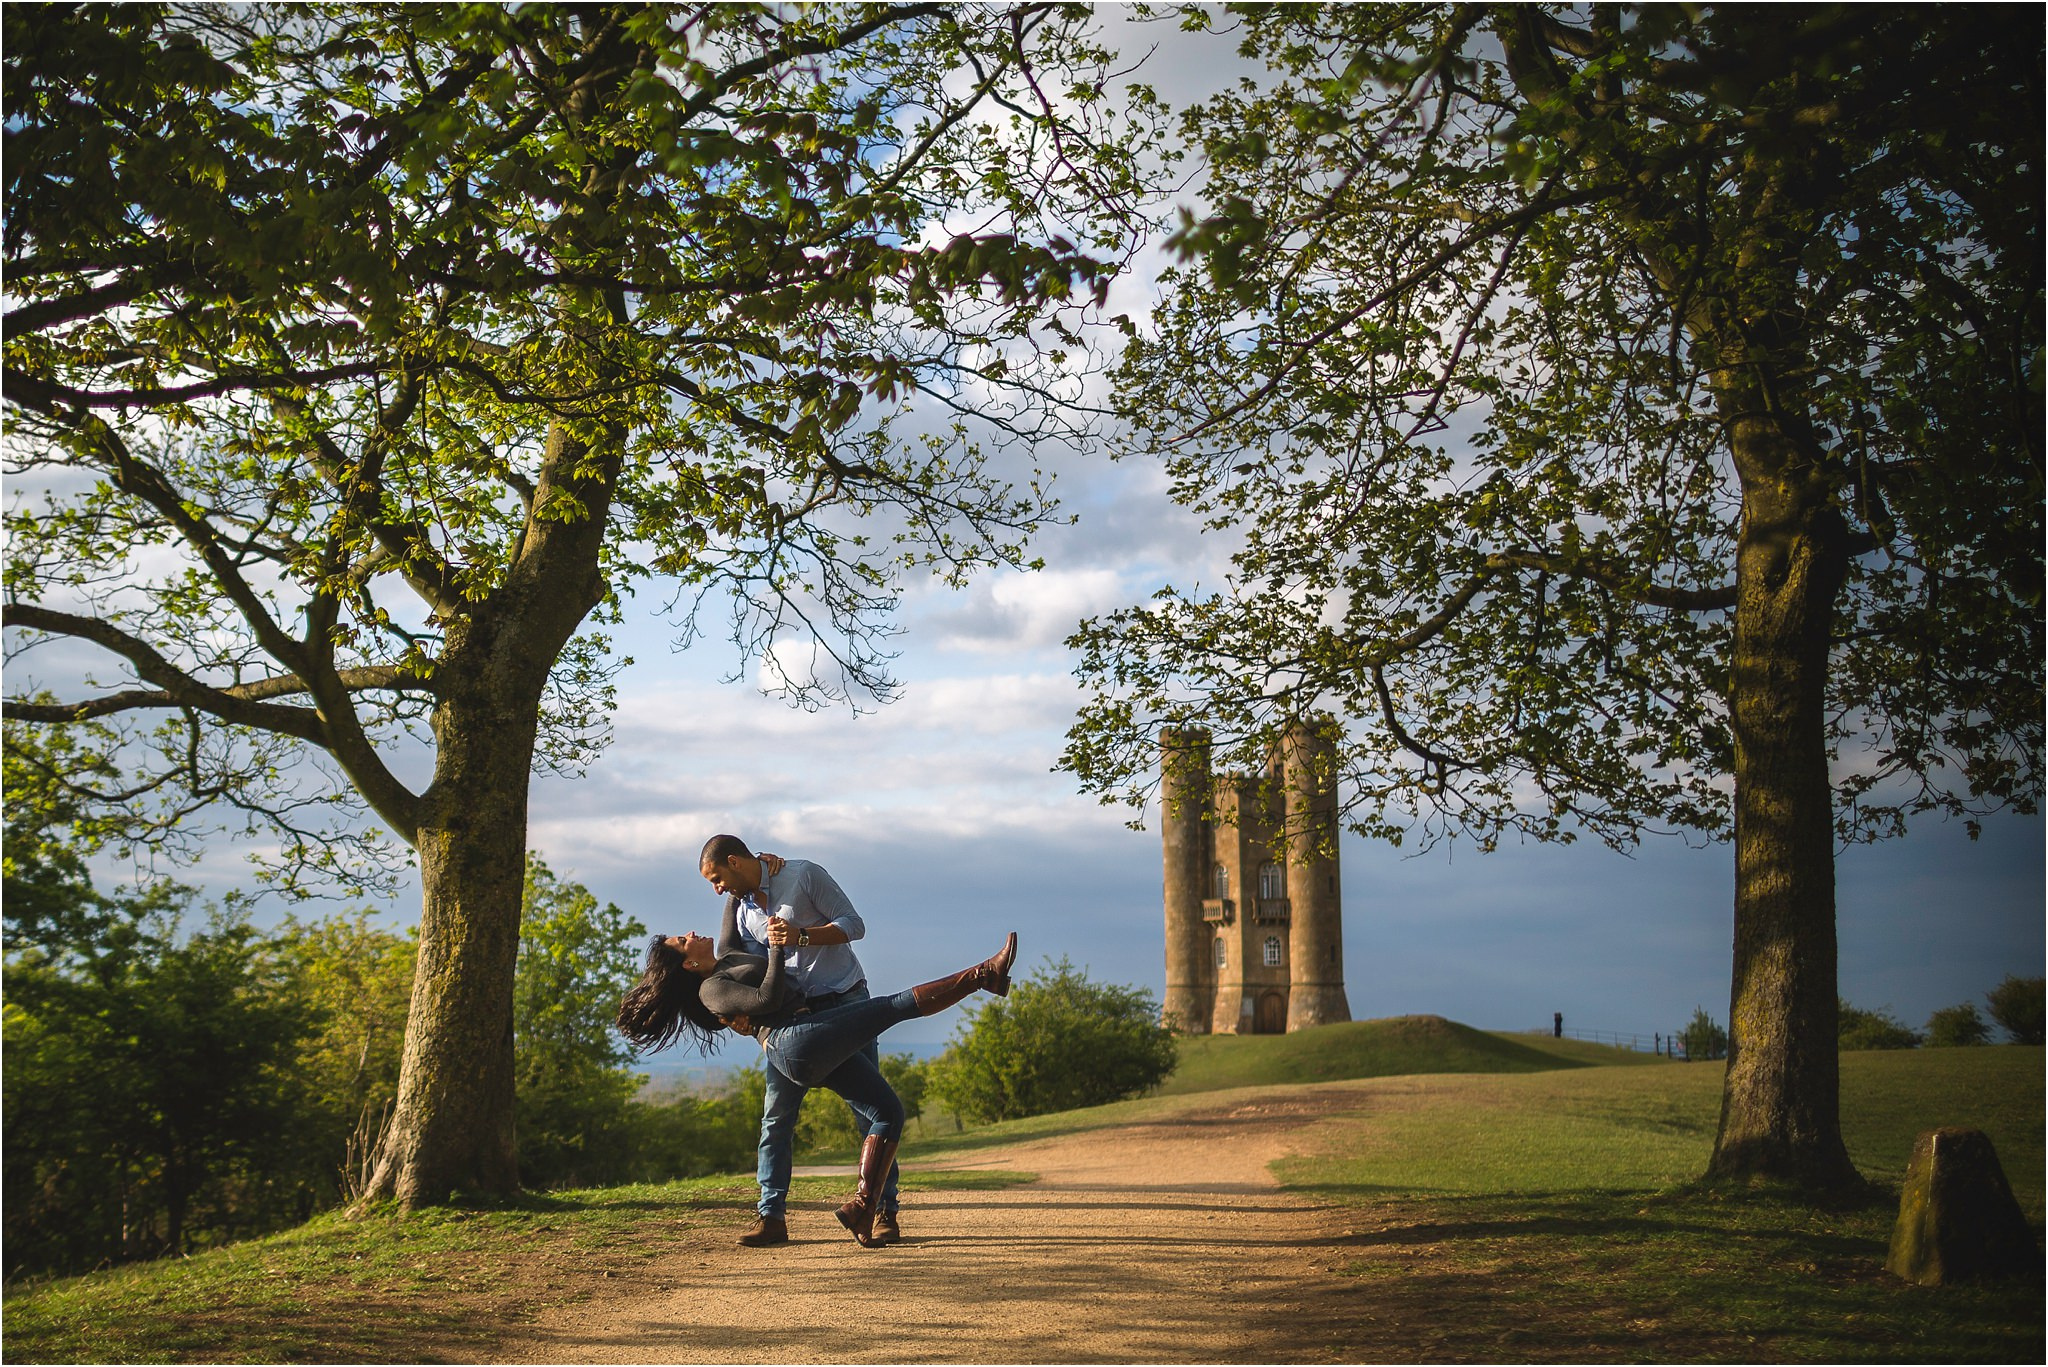 Couple dancing, with the man dipping the girl whilst she kicks her leg out. They are surrounded by trees with Broadway Tower in the background.